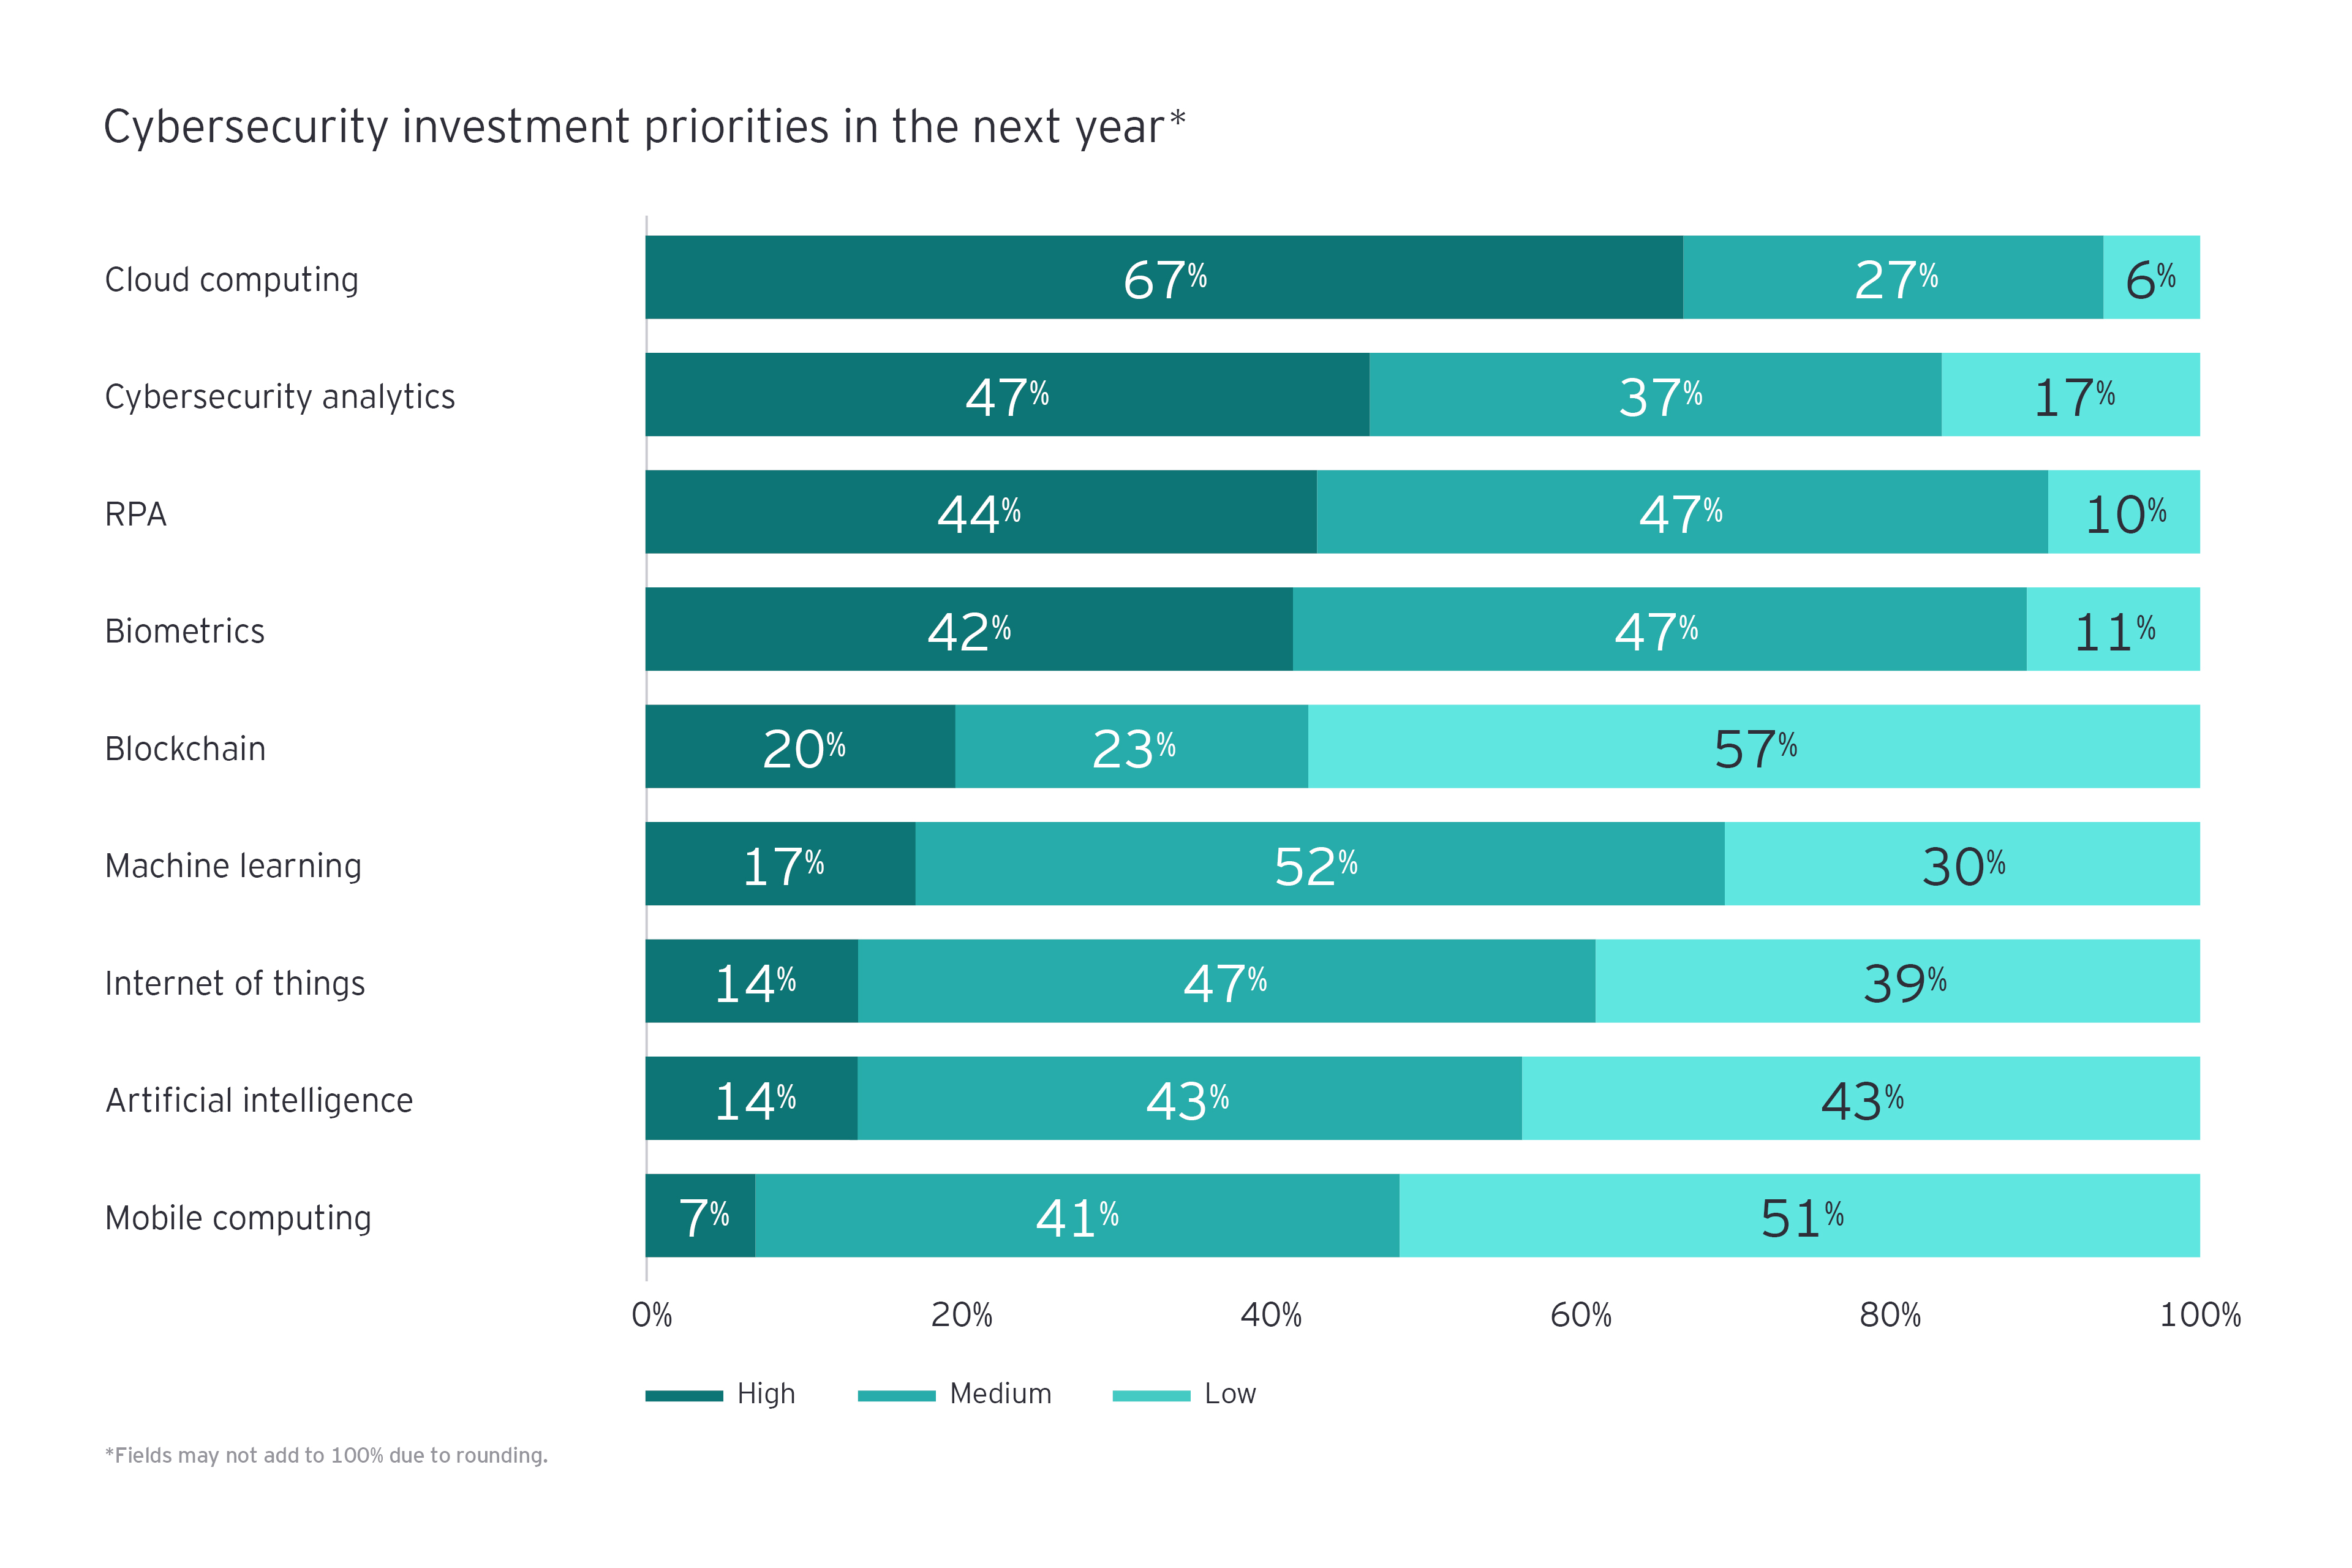 Cybersecurity investment priorities in the next year